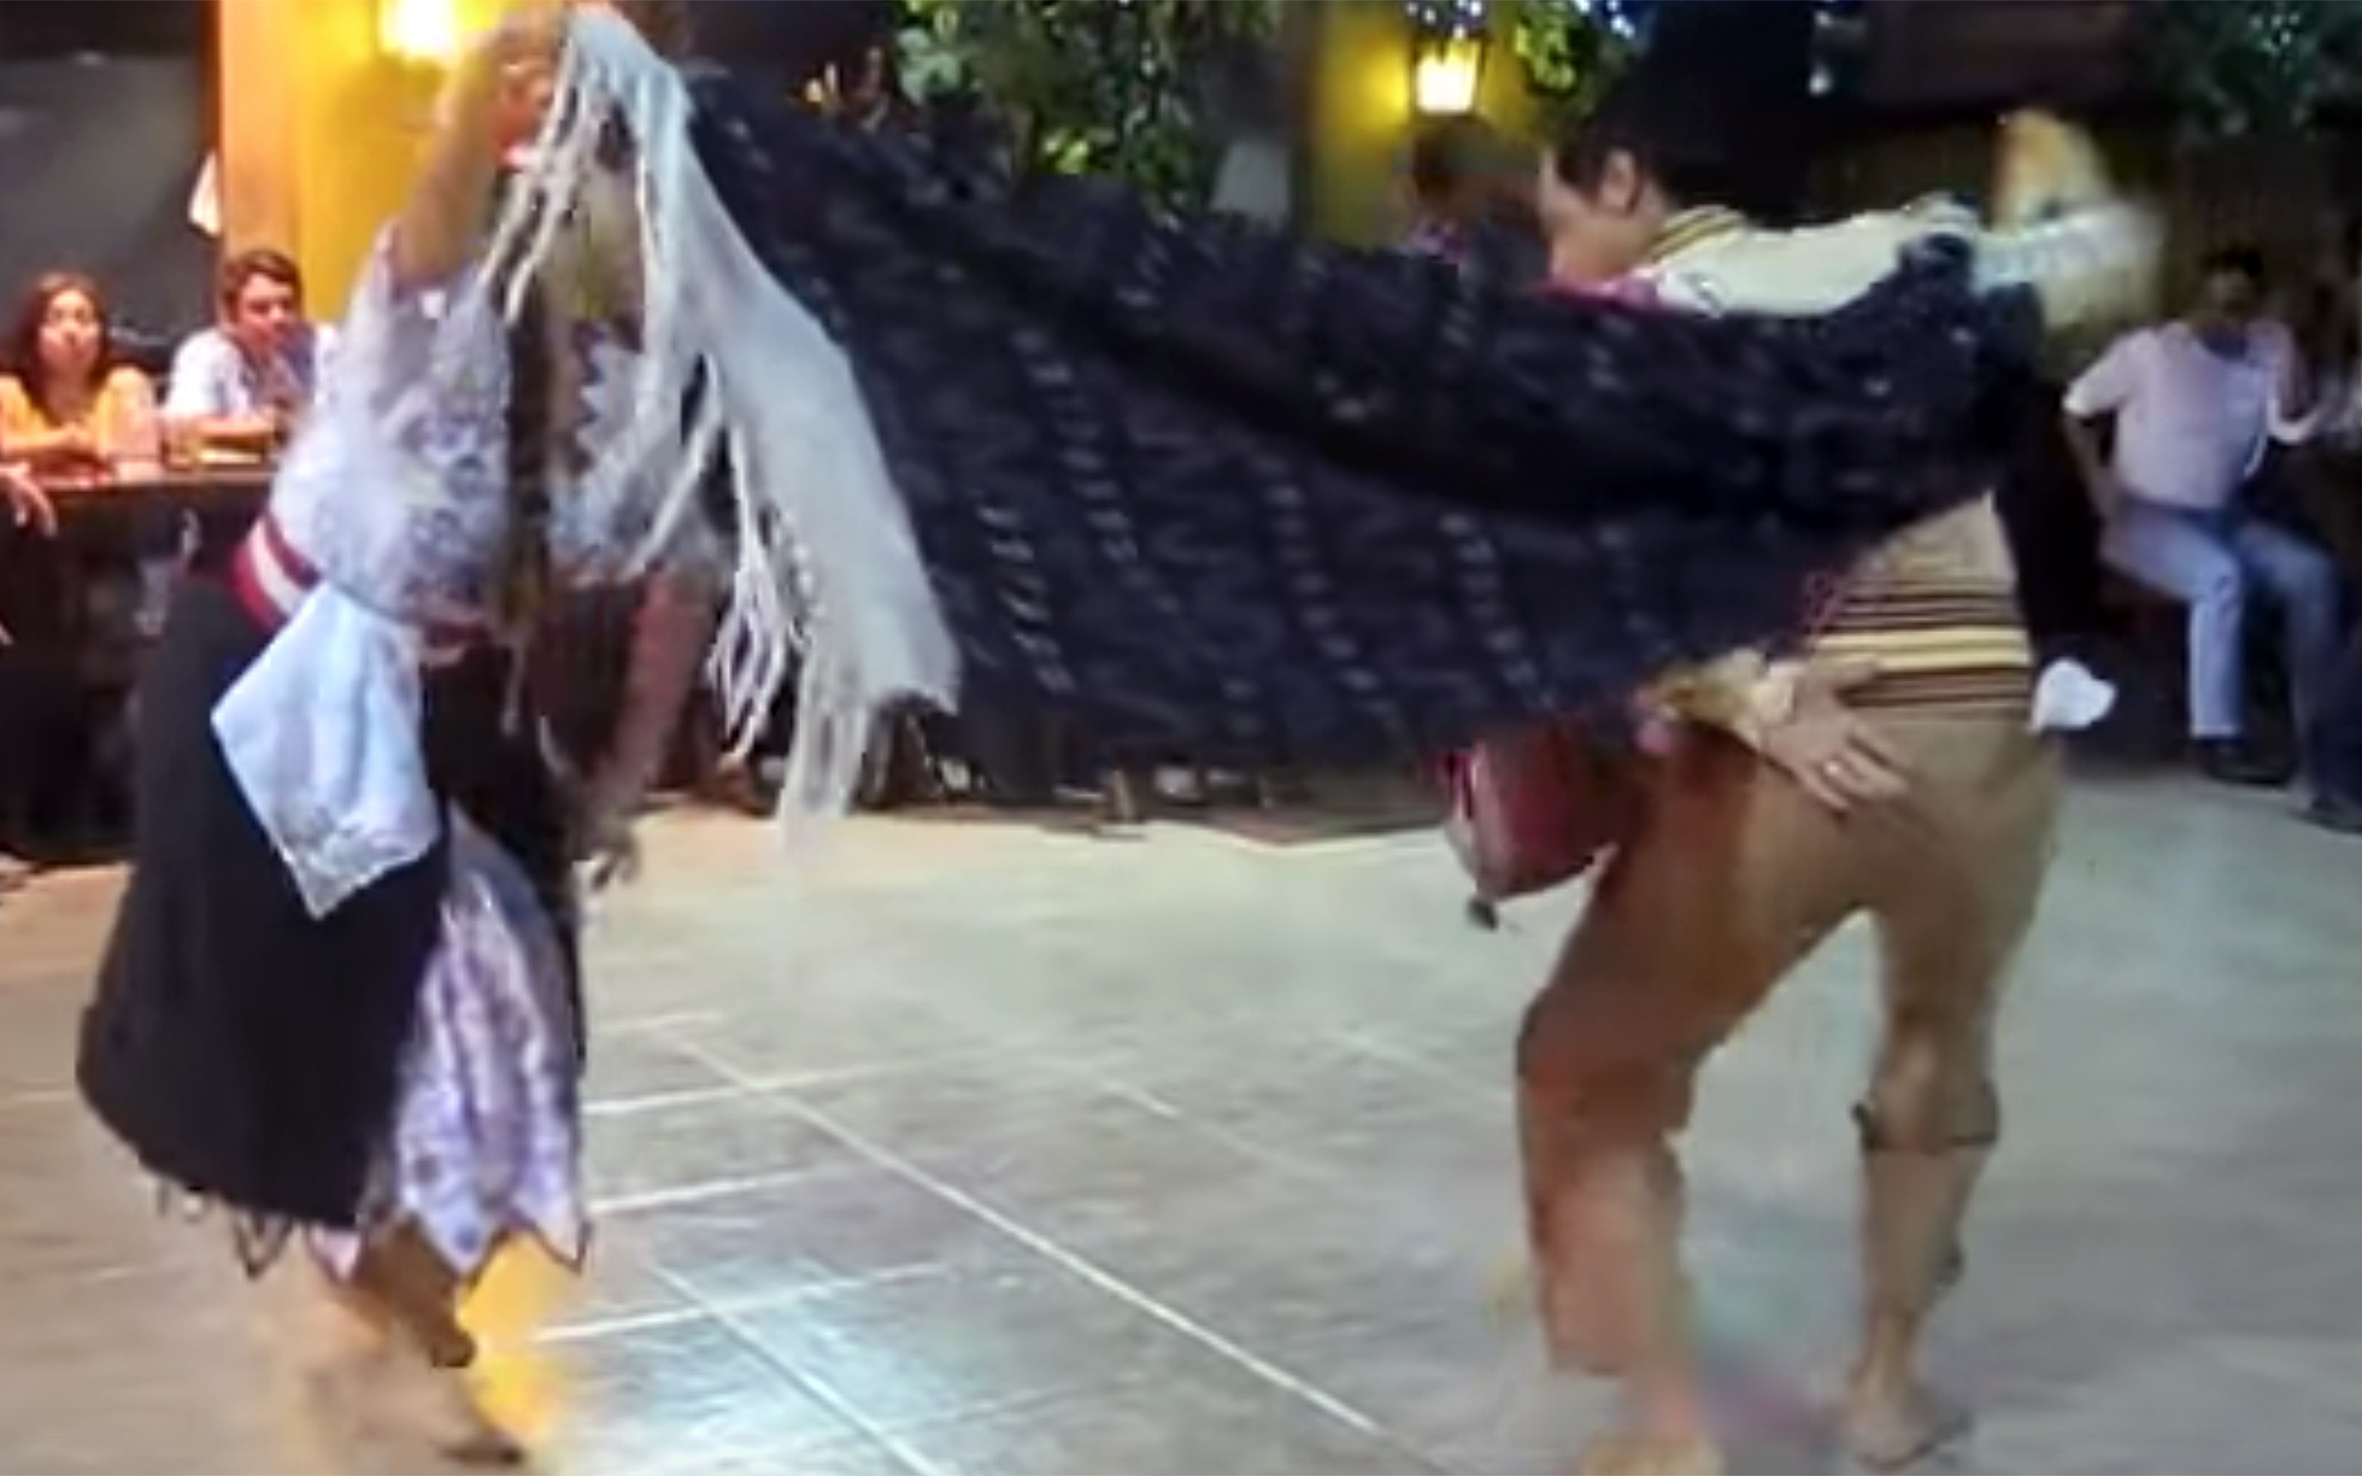 886.Tondero / Peru - Tondero is a Peruvian dance and musical genre. It is a native creation of the province of Morropón in the Department of Piura, and derived from the fusion of music brought by migrants from southern Spain and Eastern Europe, with the indigenous contribution, expressed in the introduction of the tondero, very similar to an indigenous Yaraví, as well as the African contribution, evidenced and externalised in the drum rolls.